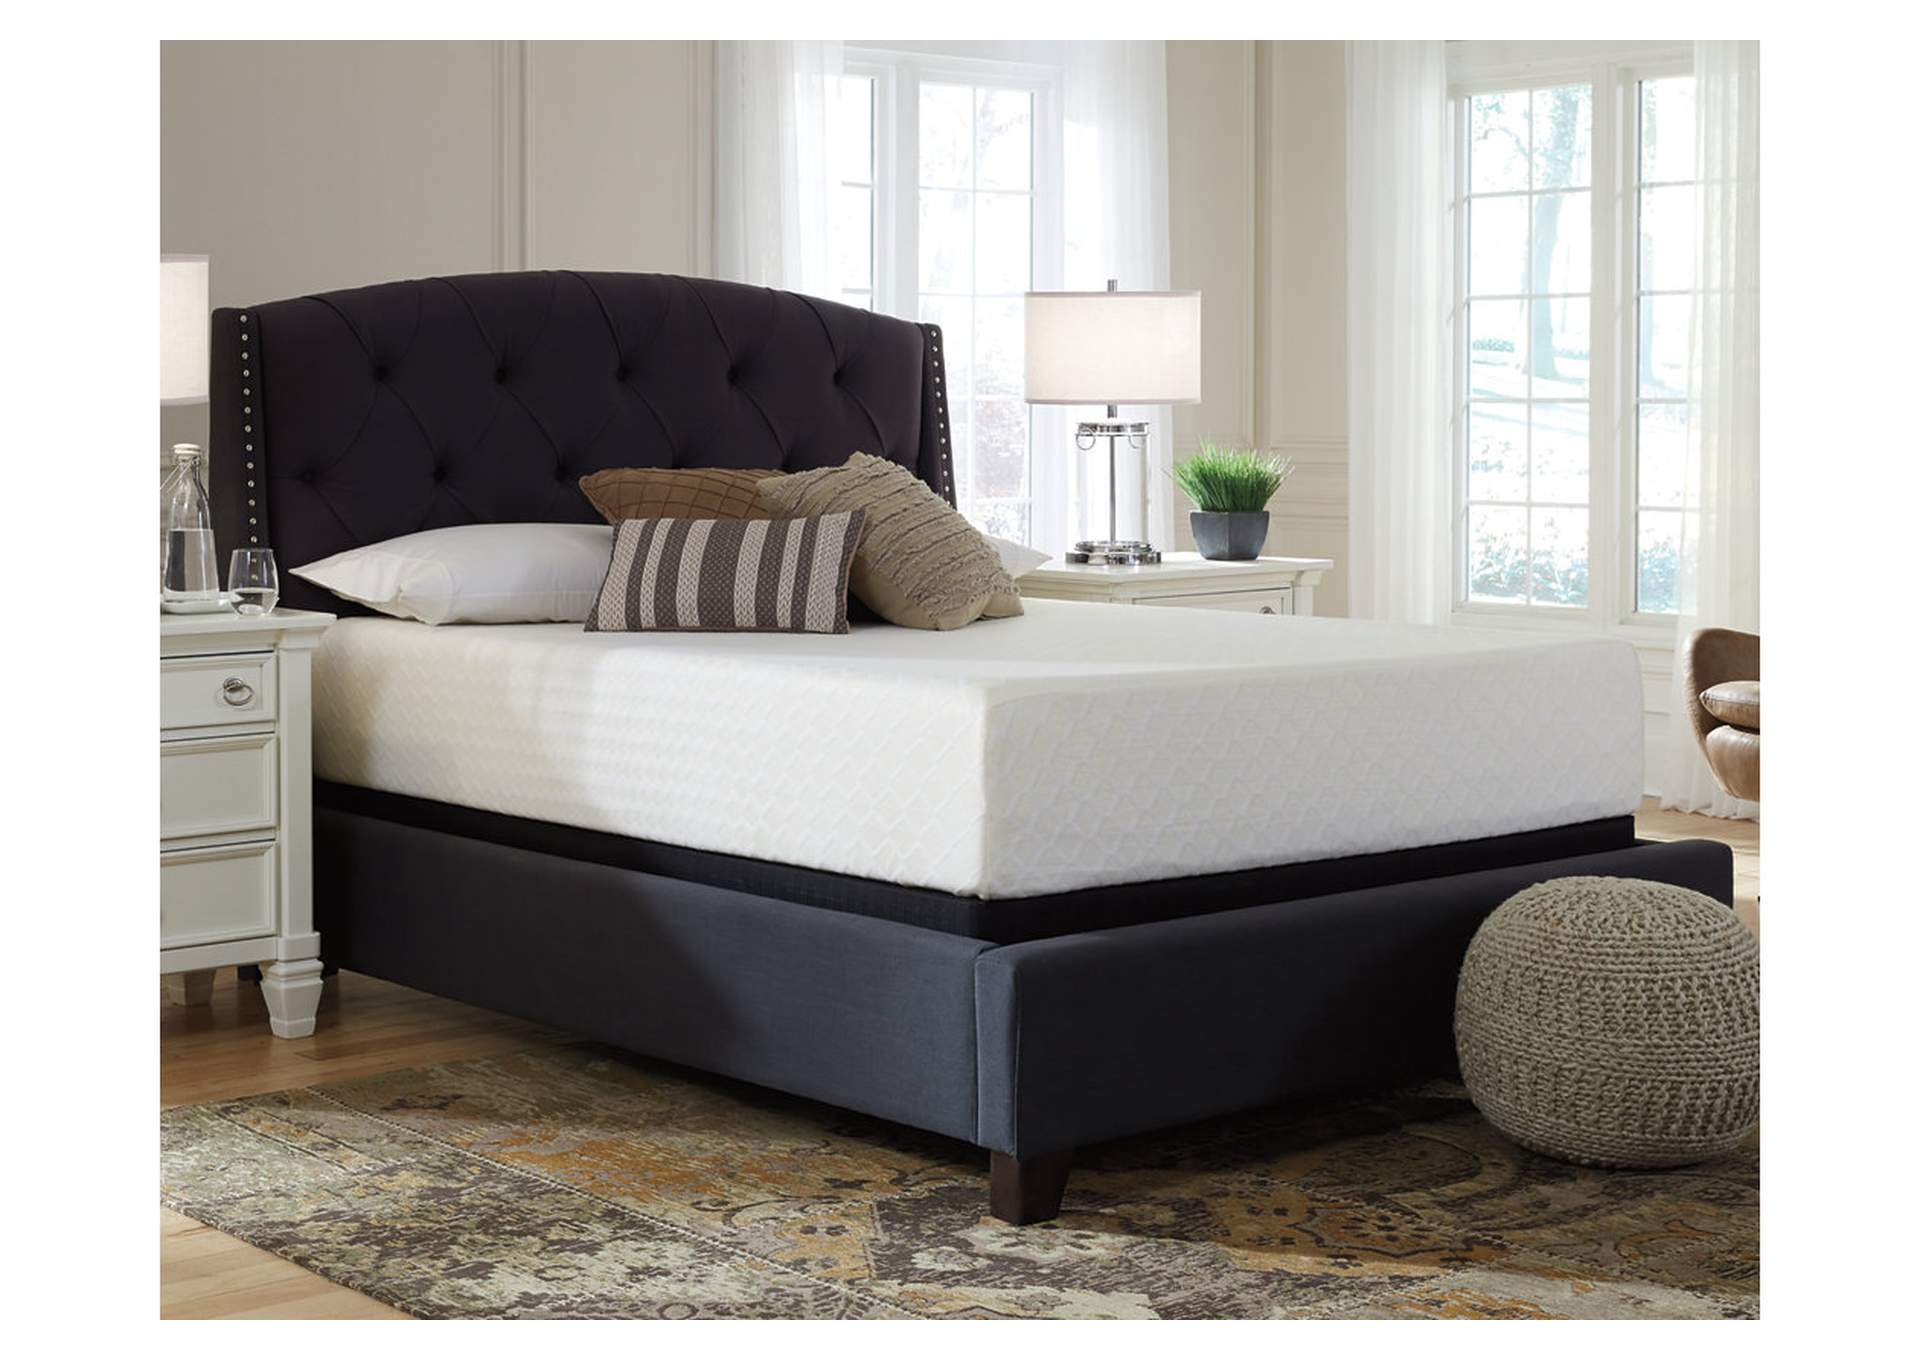 Chime 12 Inch Memory Foam Queen Mattress in a Box,Sierra Sleep by Ashley